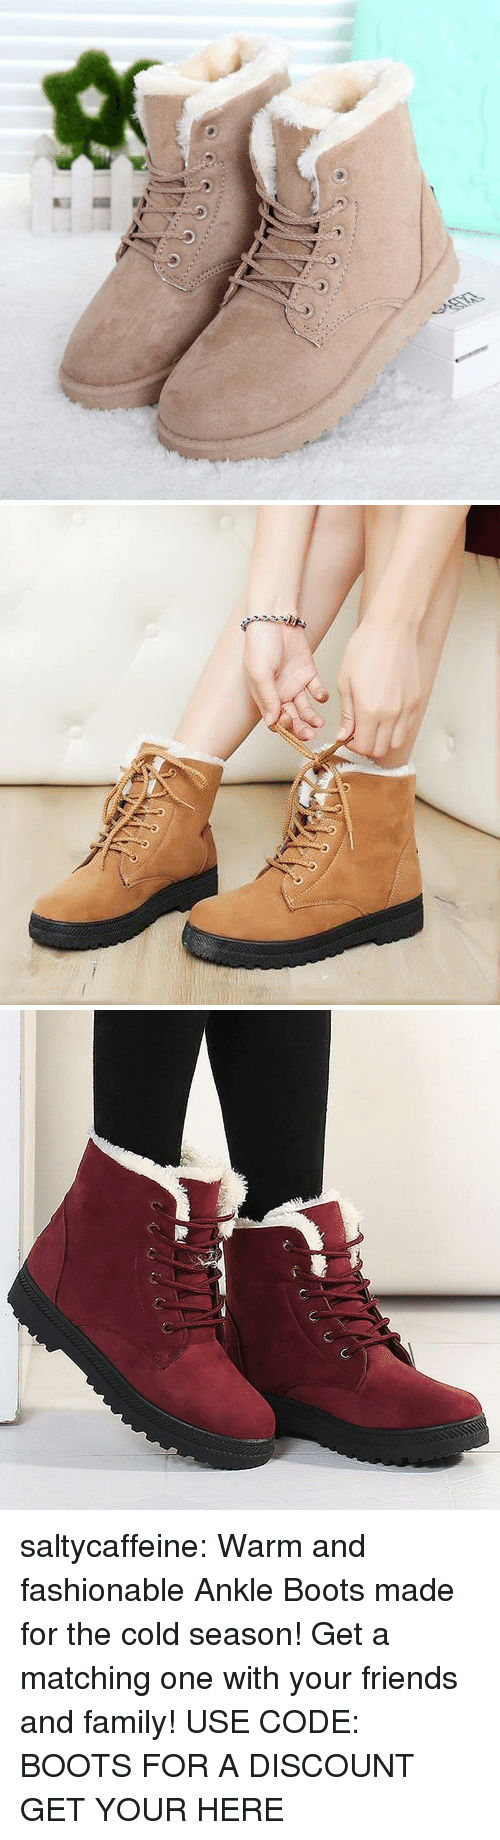 Family, Friends, and Tumblr: saltycaffeine:  Warm and fashionable Ankle Boots made for the cold season! Get a matching one with your friends and family! USE CODE: BOOTS FOR A DISCOUNT GET YOUR HERE